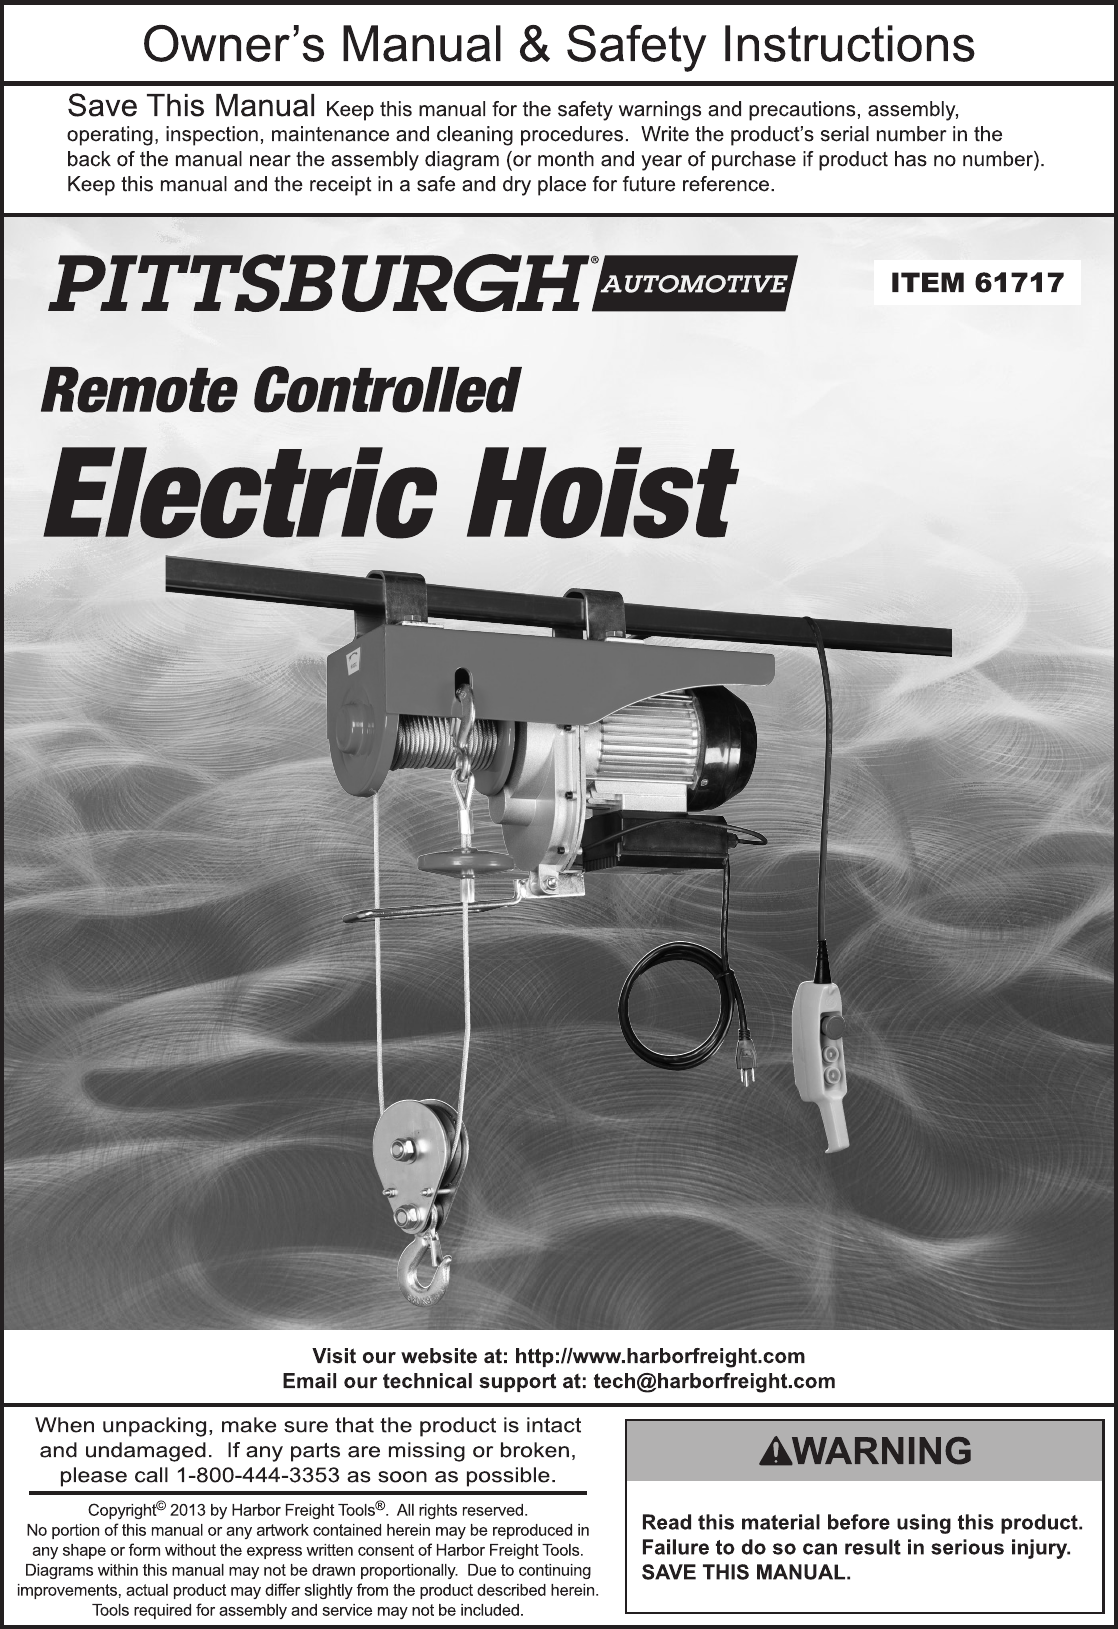 HarborFreight2000LbElectricHoistWithRemoteControlProductManual723643.1754078837 User Guide Page 1 harbor freight 2000 lb electric hoist with remote control product manual